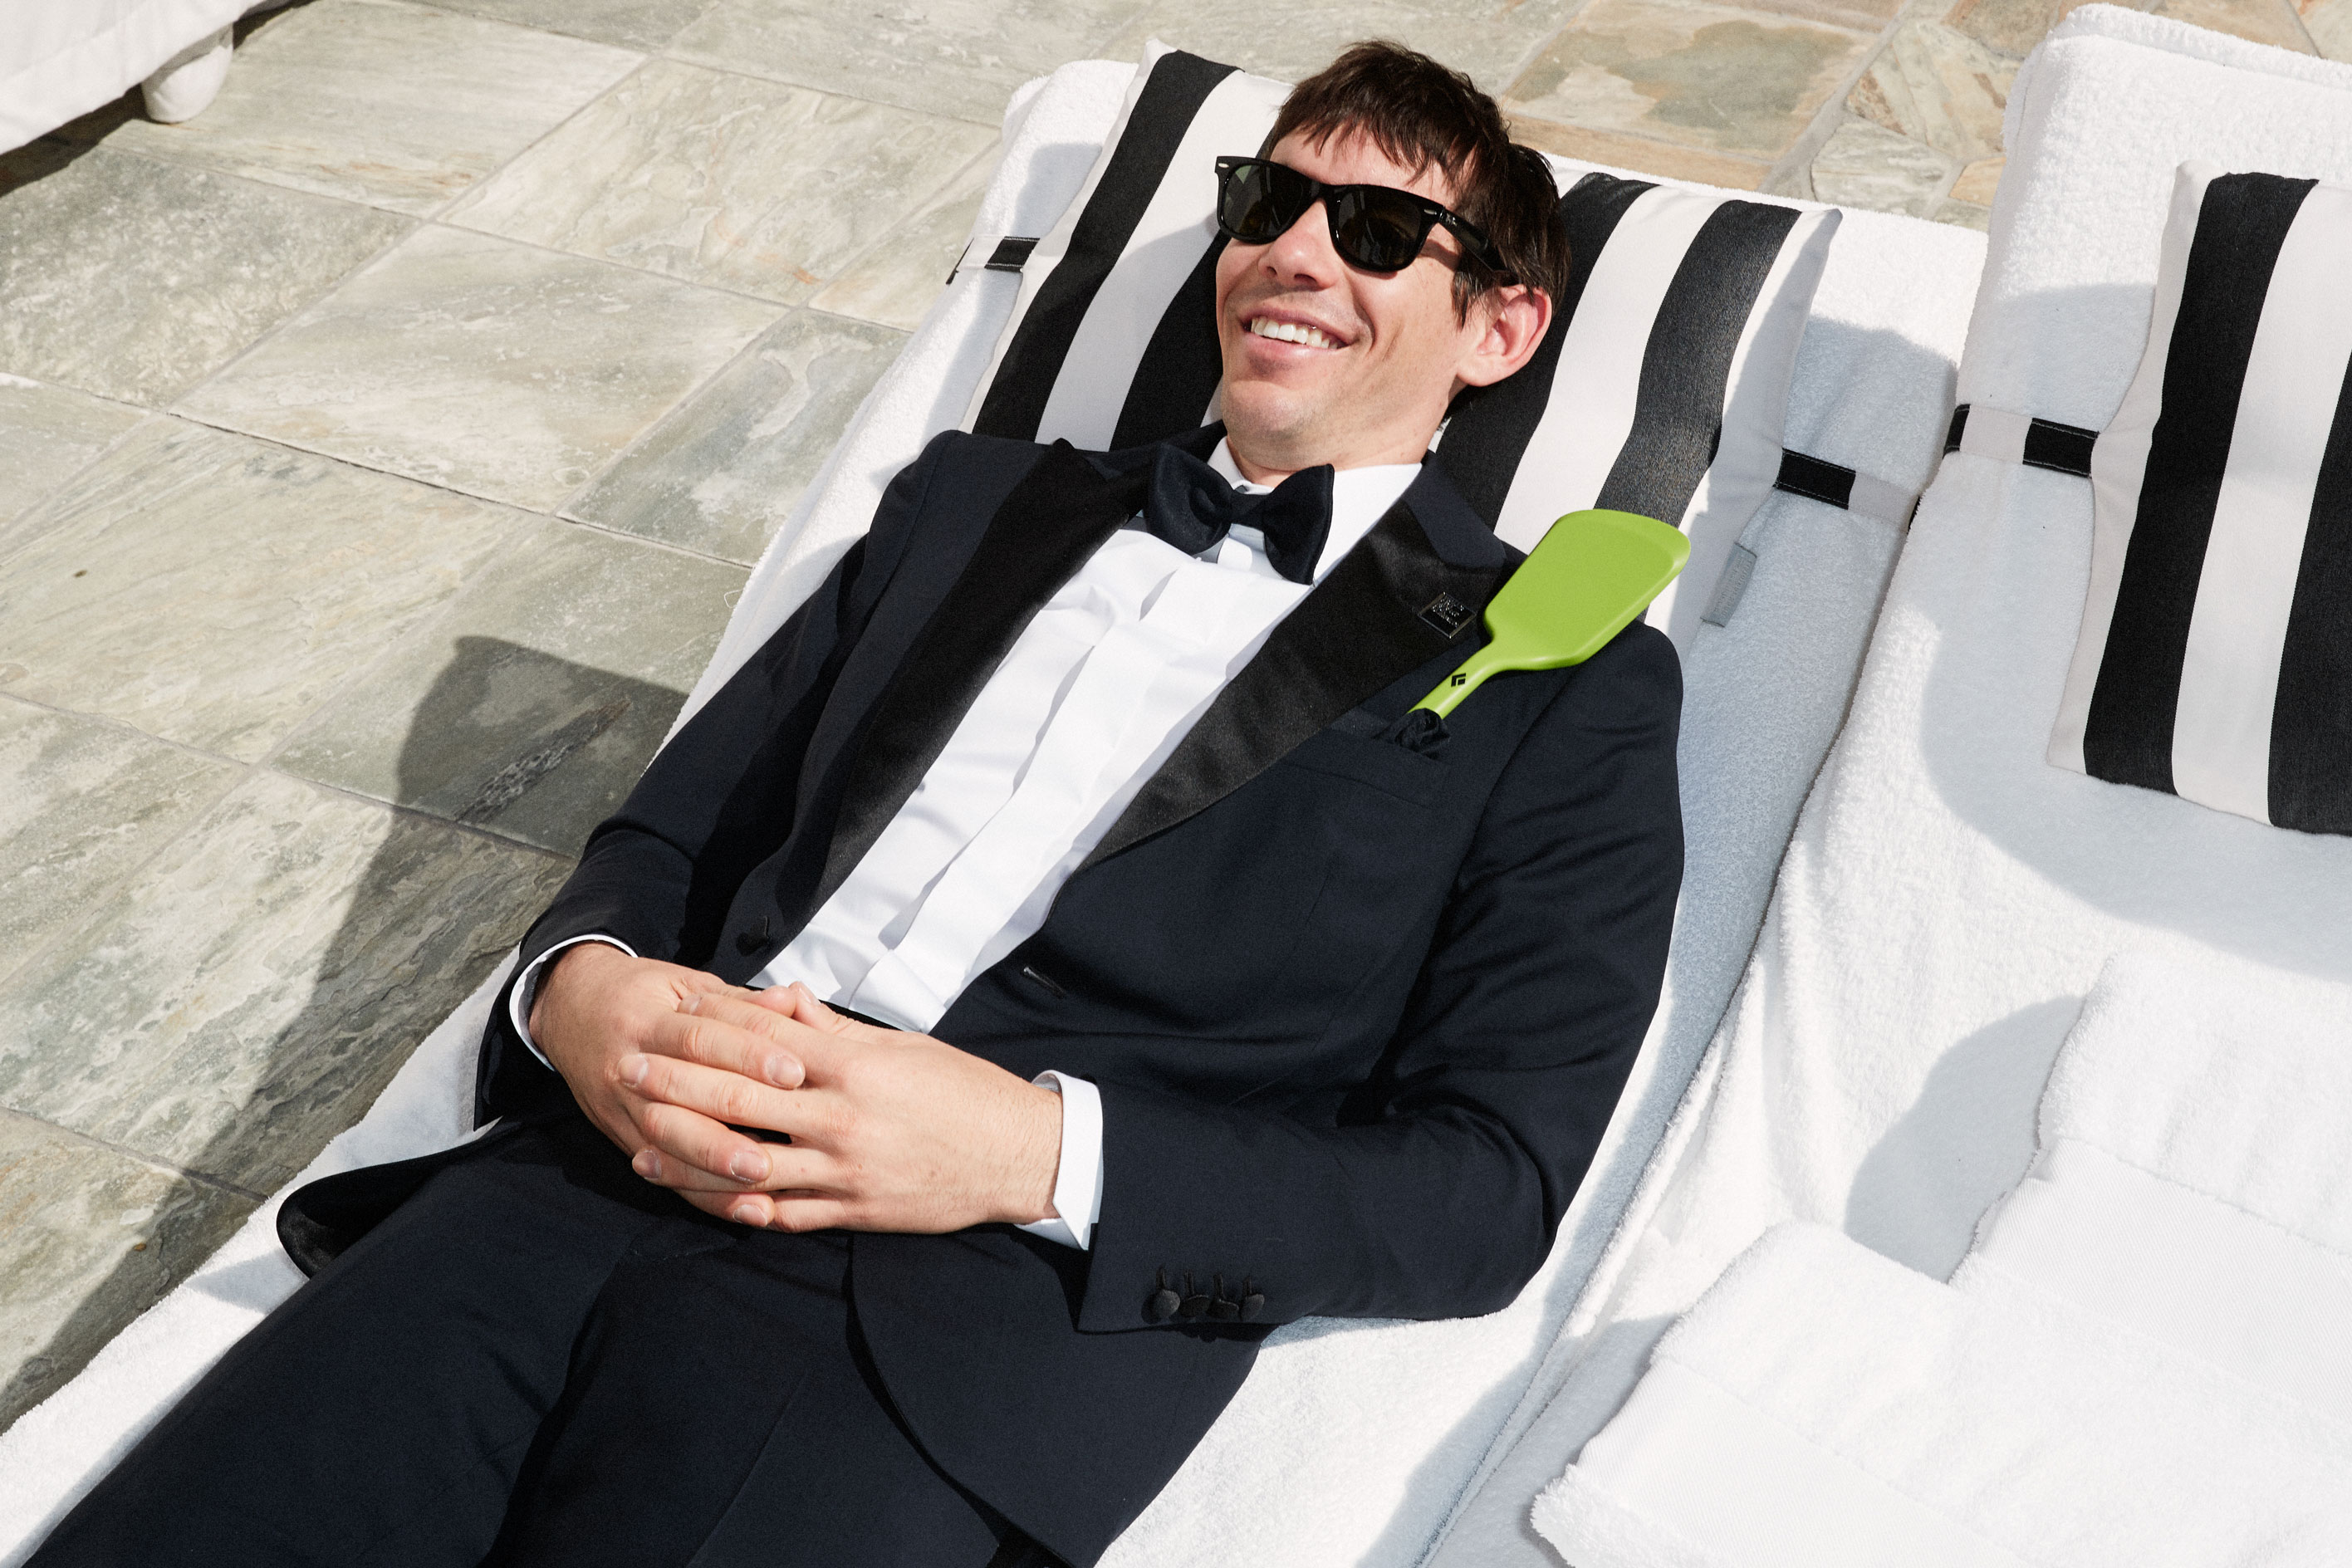 Alex Honnold lounging beach chair in a tux